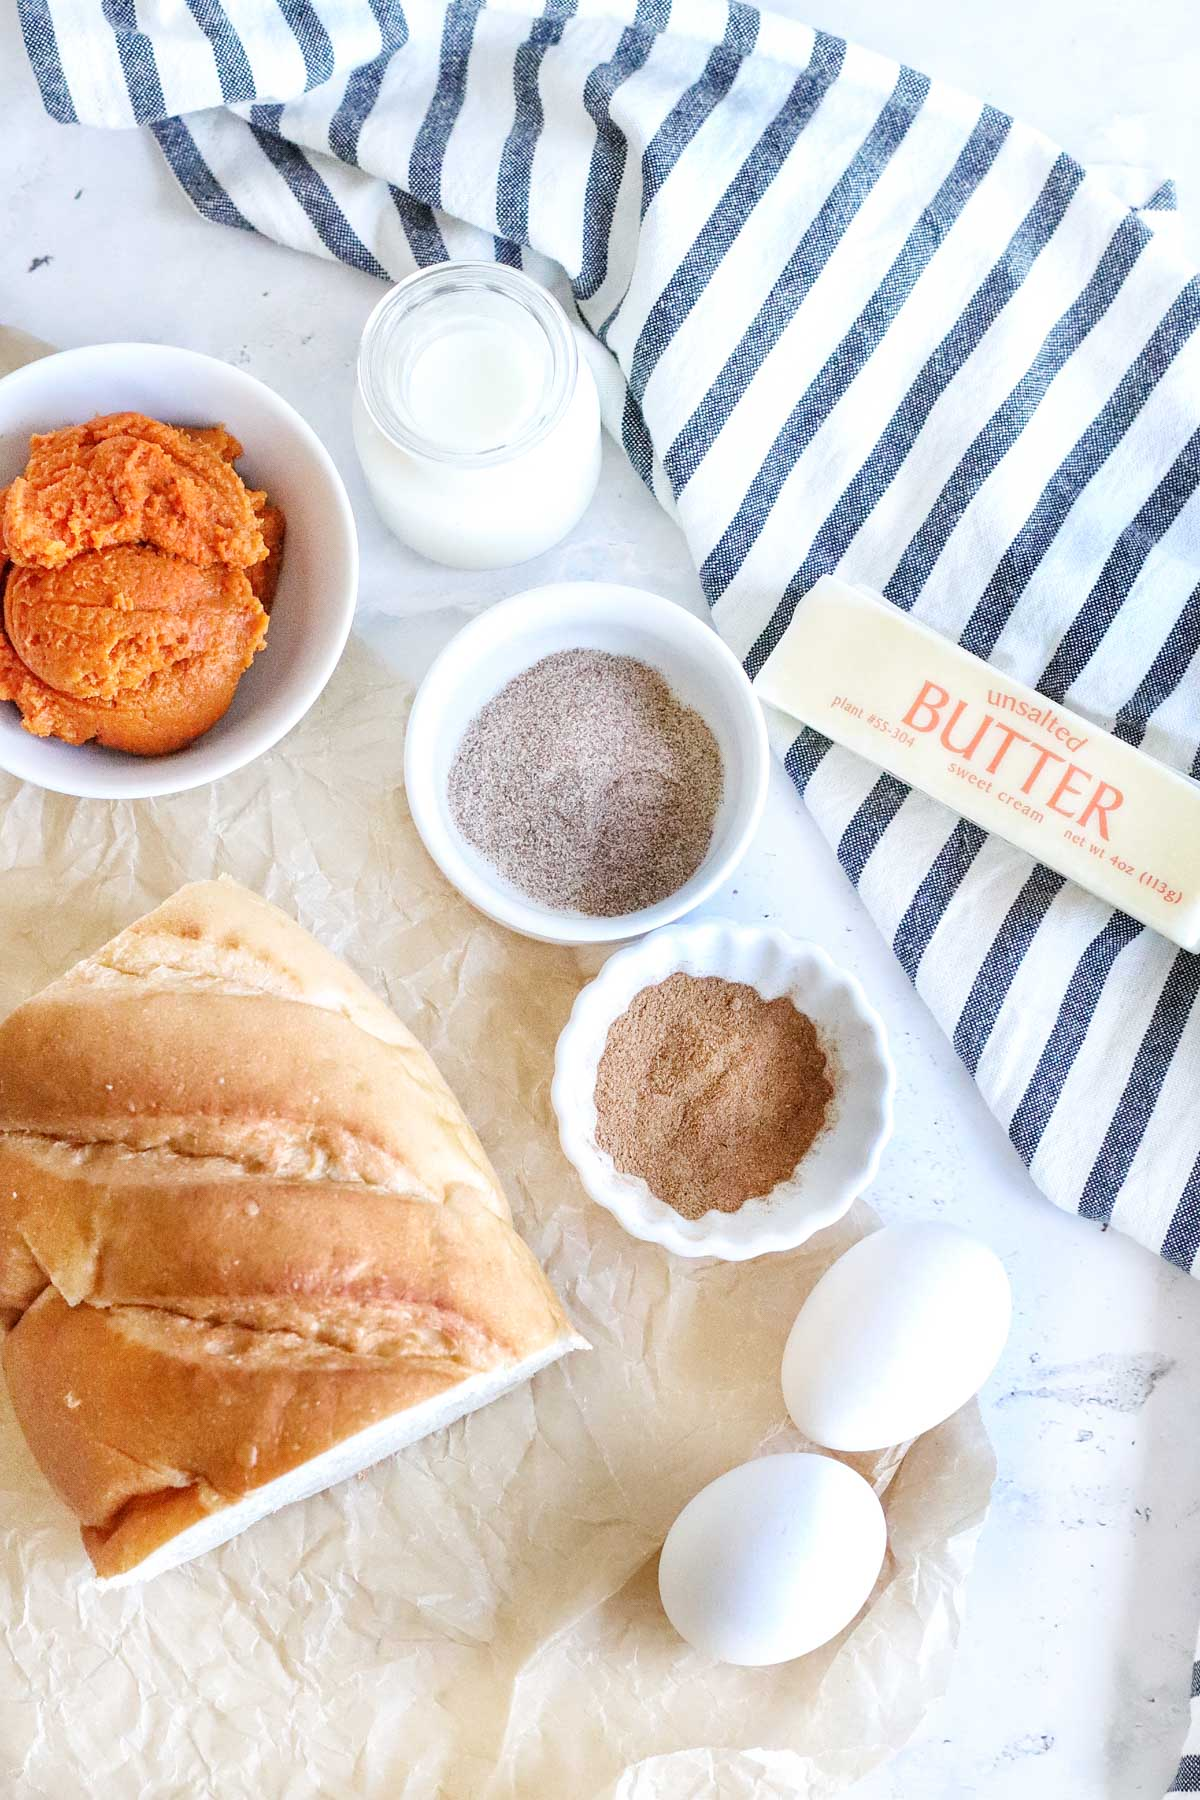 ingredients for pumpkin french toast sticks, including bread, spices, eggs, pumpkin purée and butter